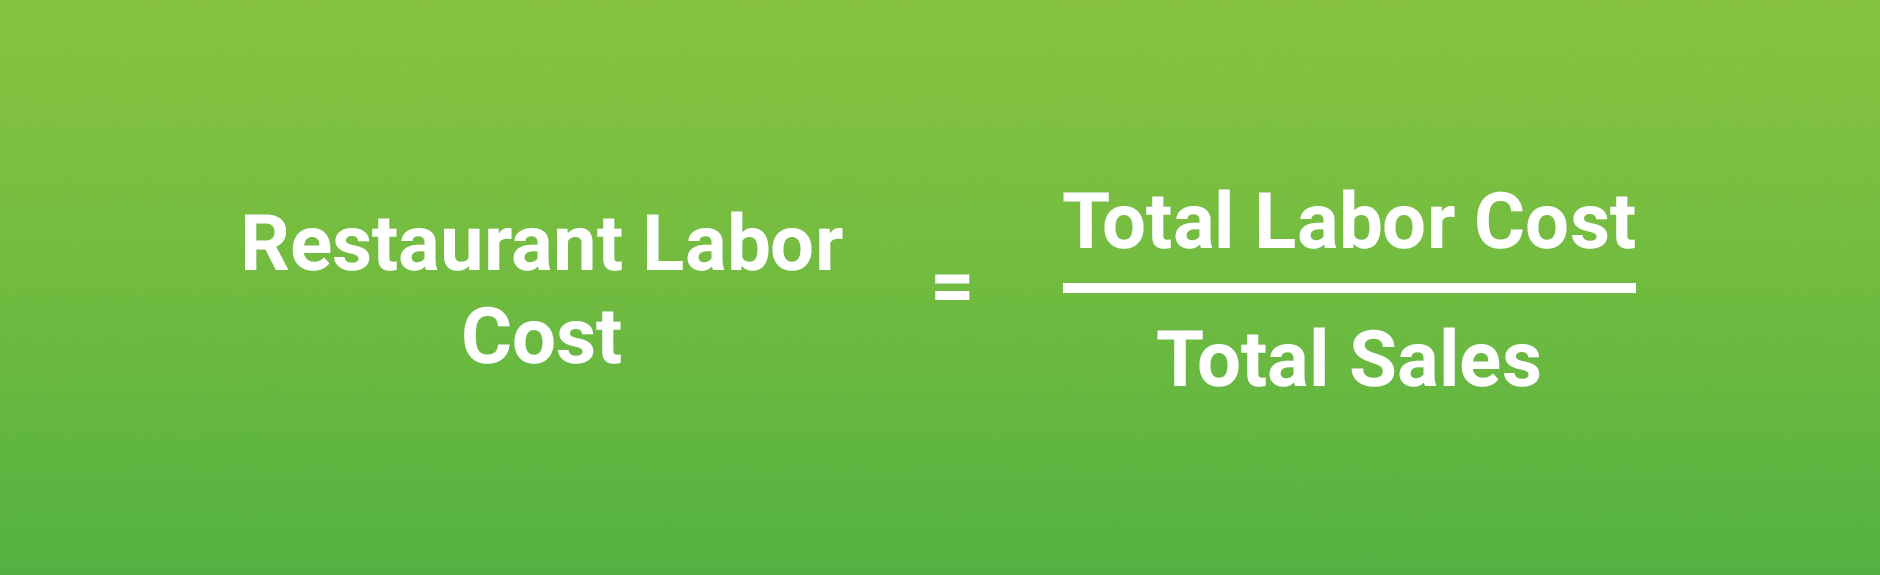 Restaurant Labor Cost Percentage Formula